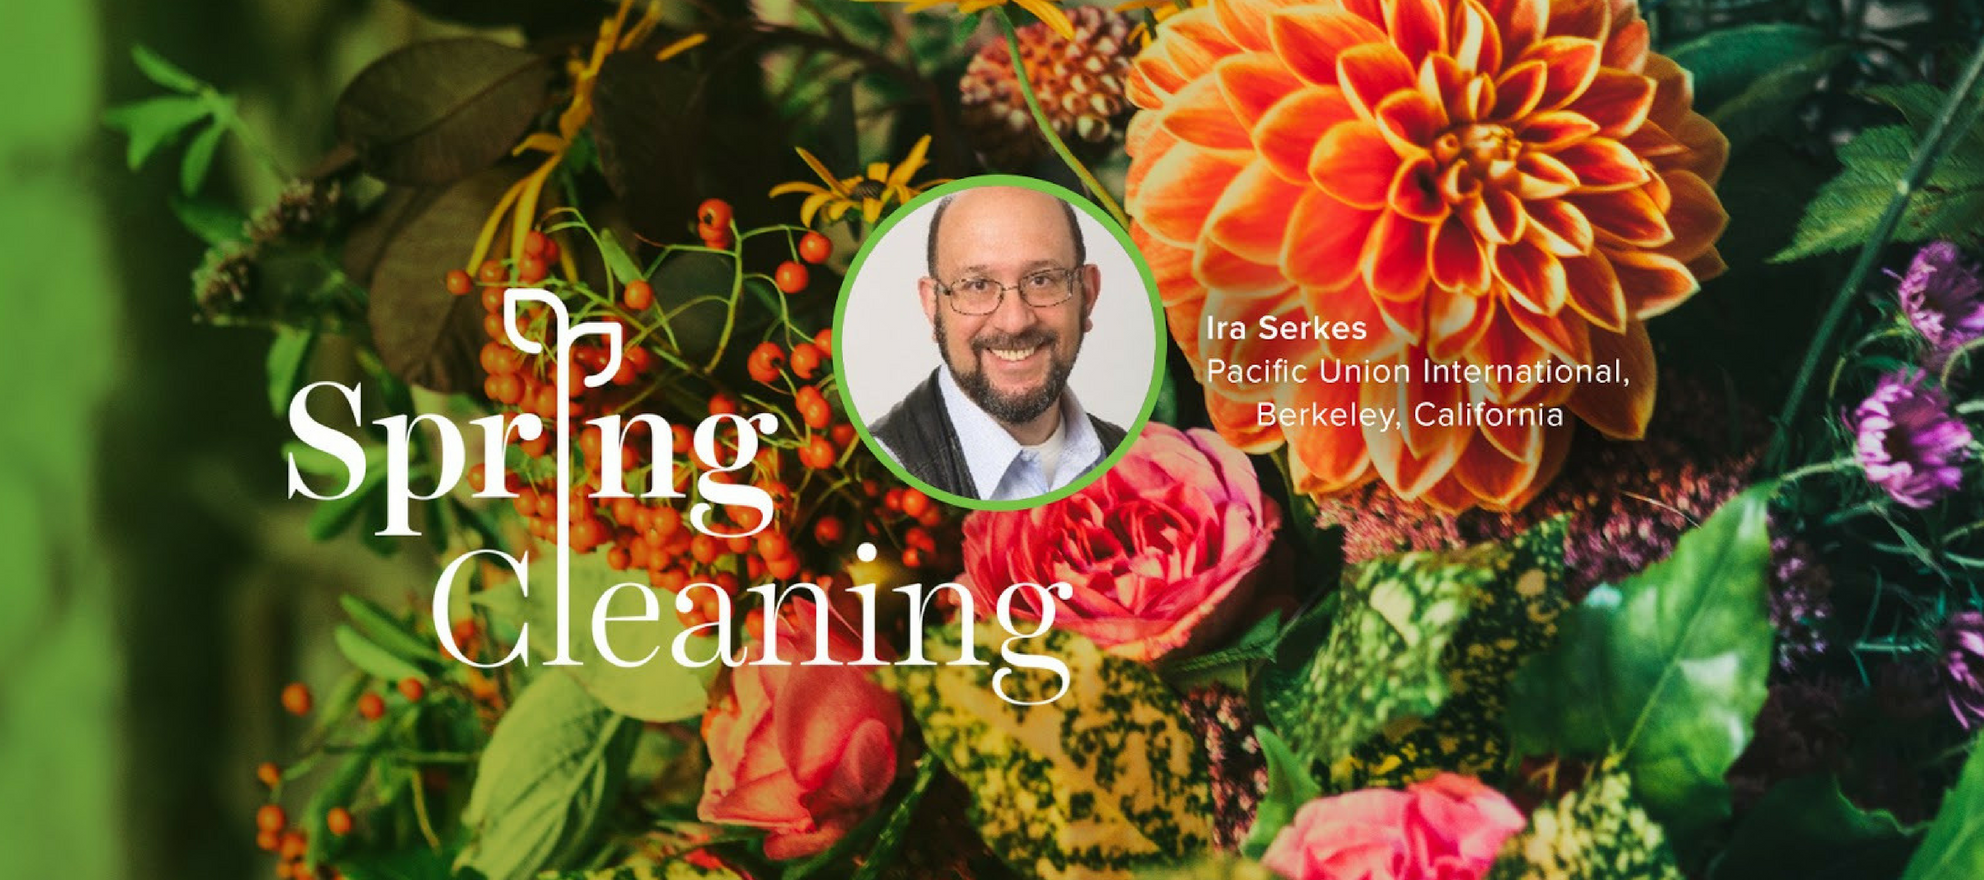 Spring Forward, Ira Serkes, Spring Cleaning